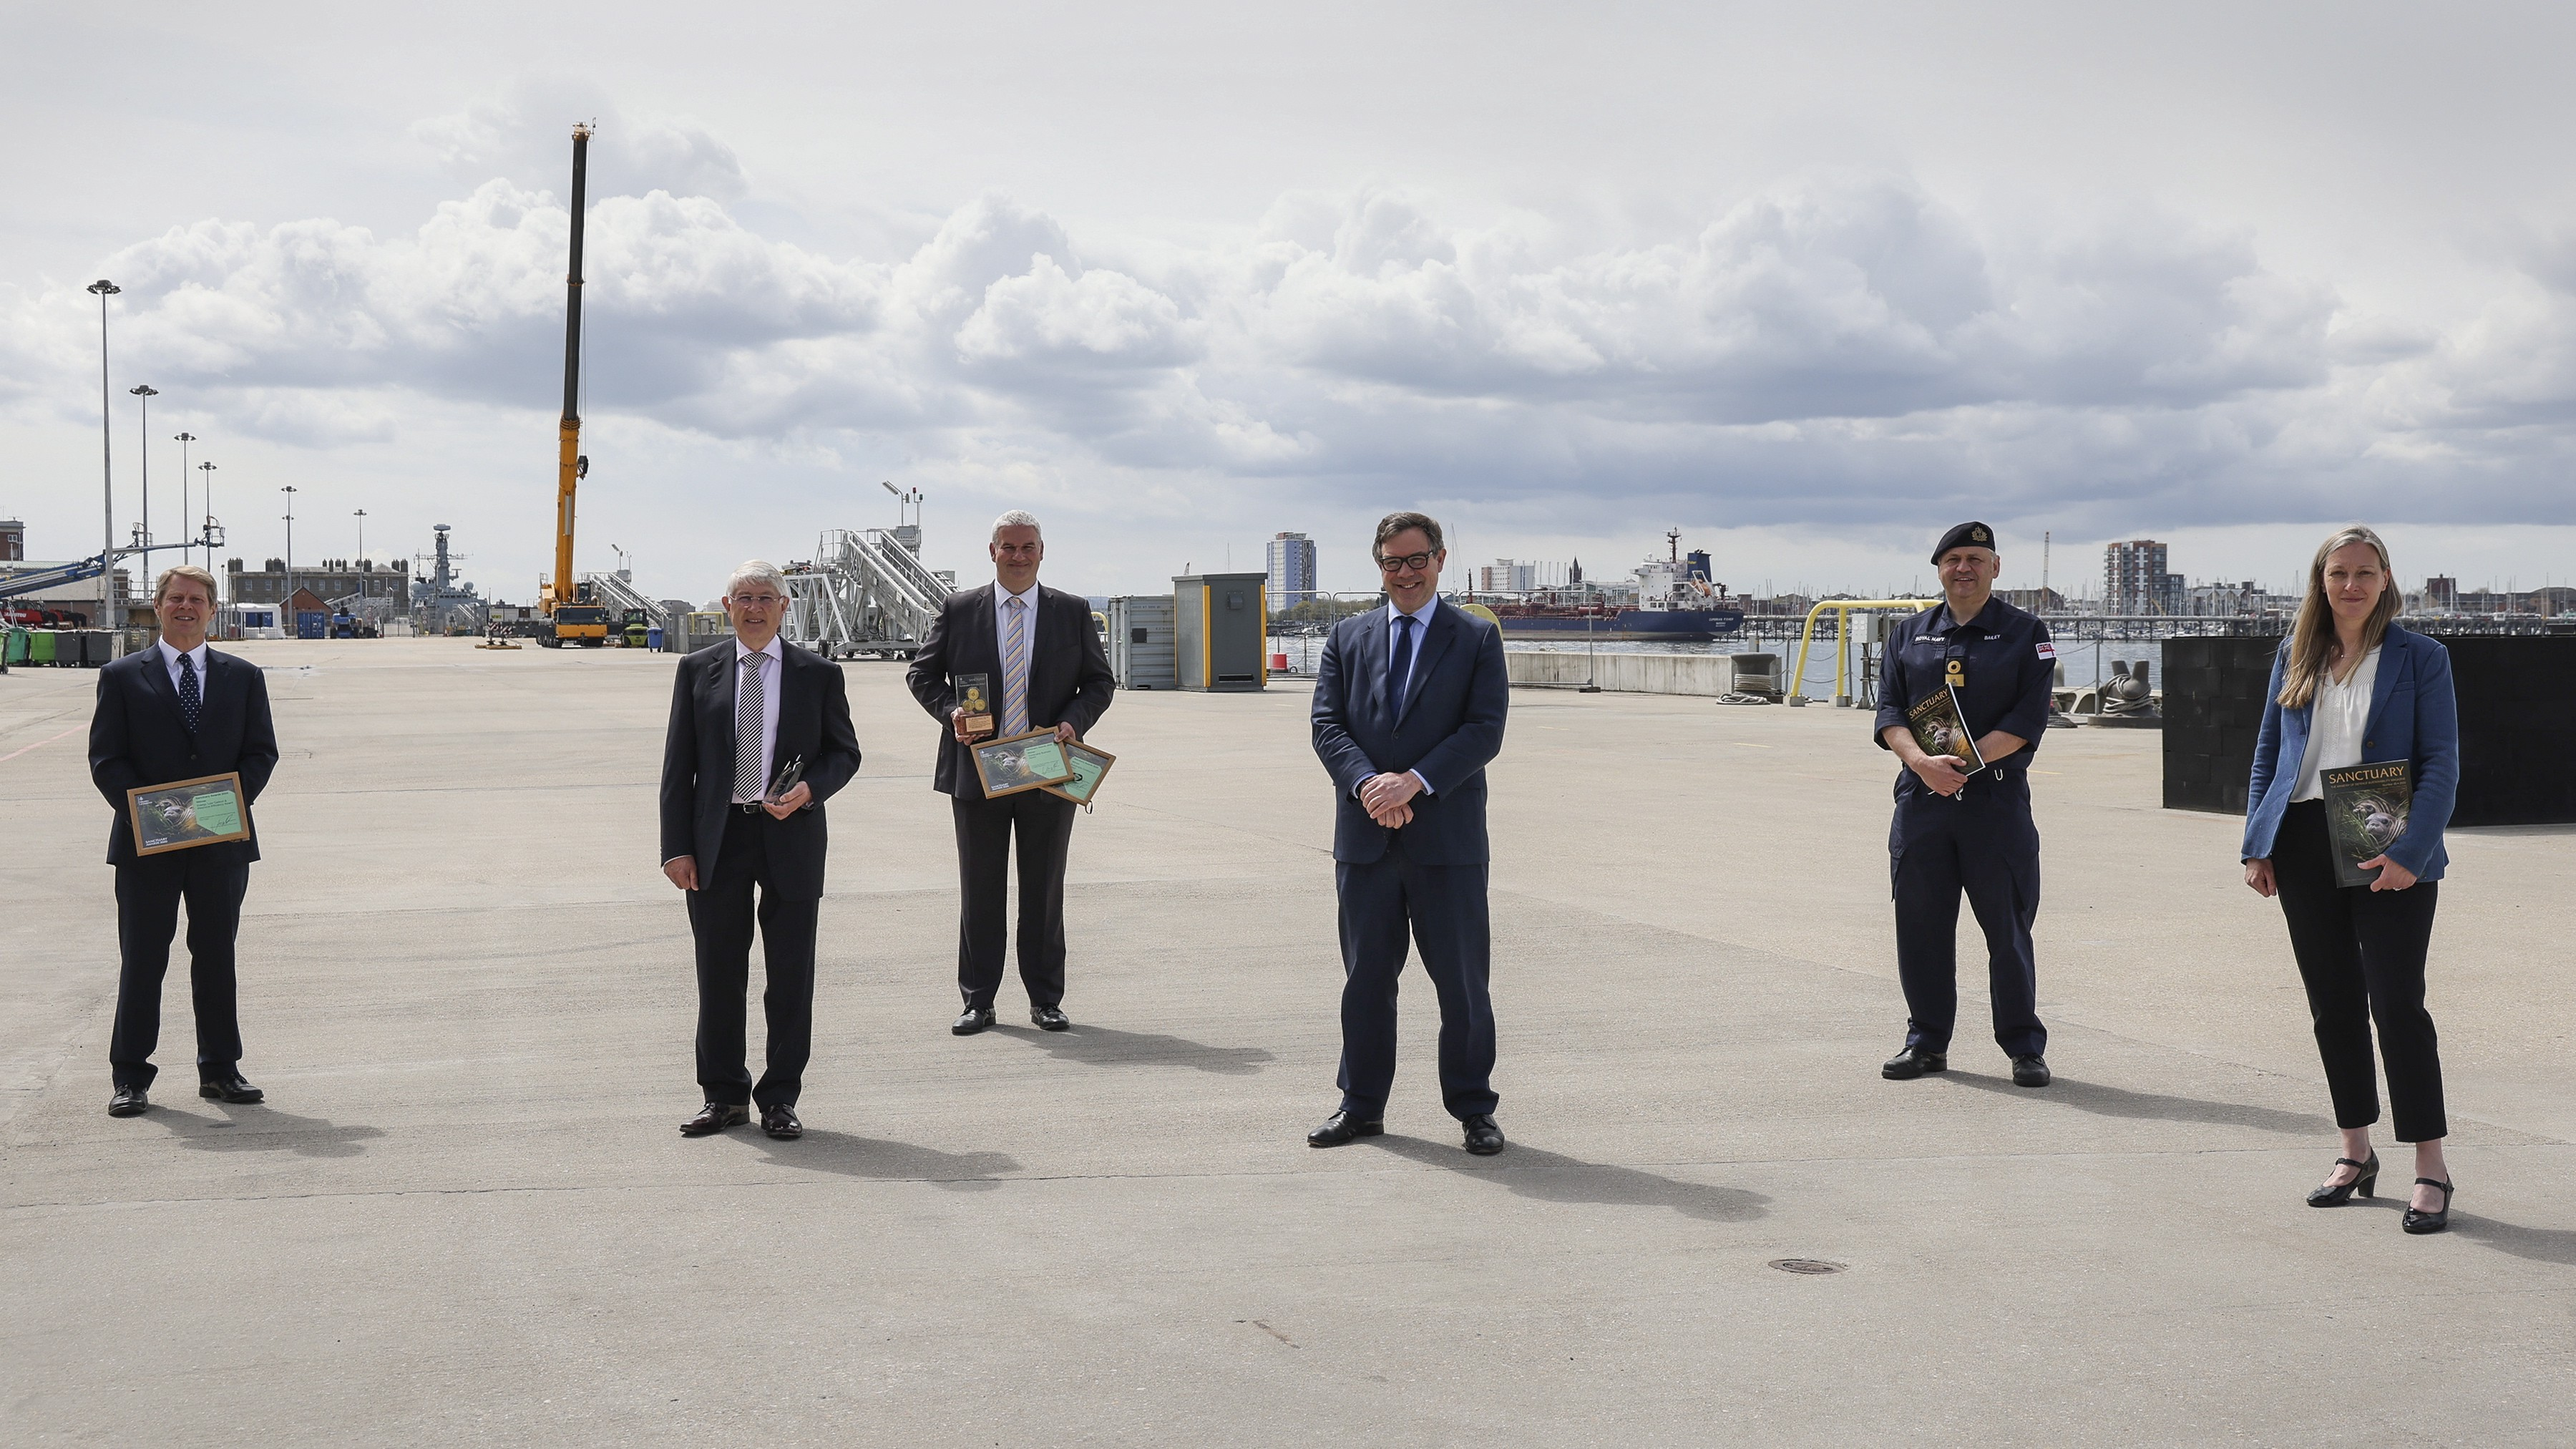 Minister for Defence Procurement, Jeremy Quin, presented winners from HM Naval Base, Portsmouth with their Defence Sustainable Business and Low Carbon Sanctuary Awards 2020 during a recent visit to the base.